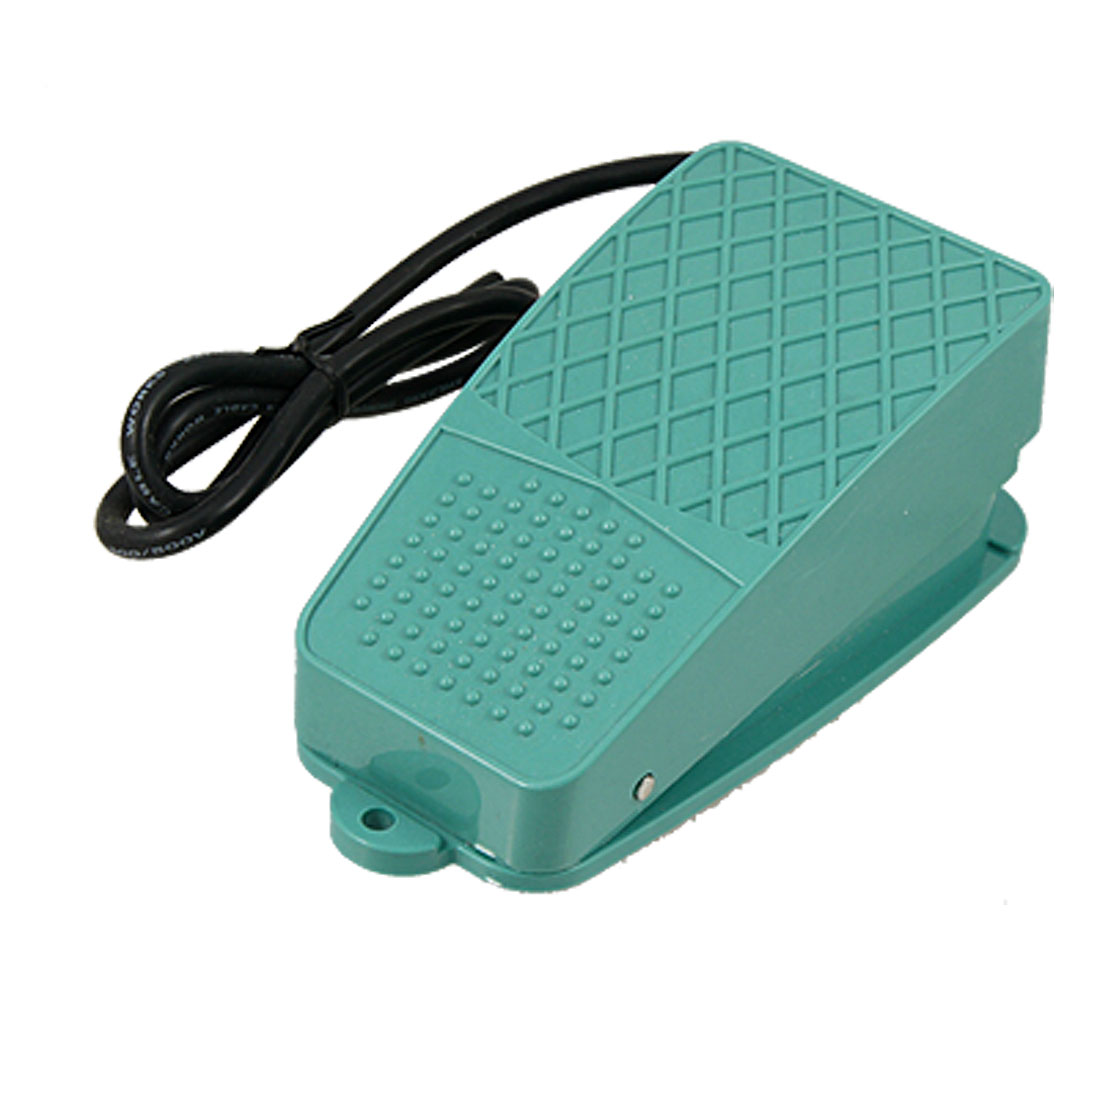 10A SPDT NO NC Metal Nonslip Momentary Power Treadle Foot Pedal Switch for CNC Industrial